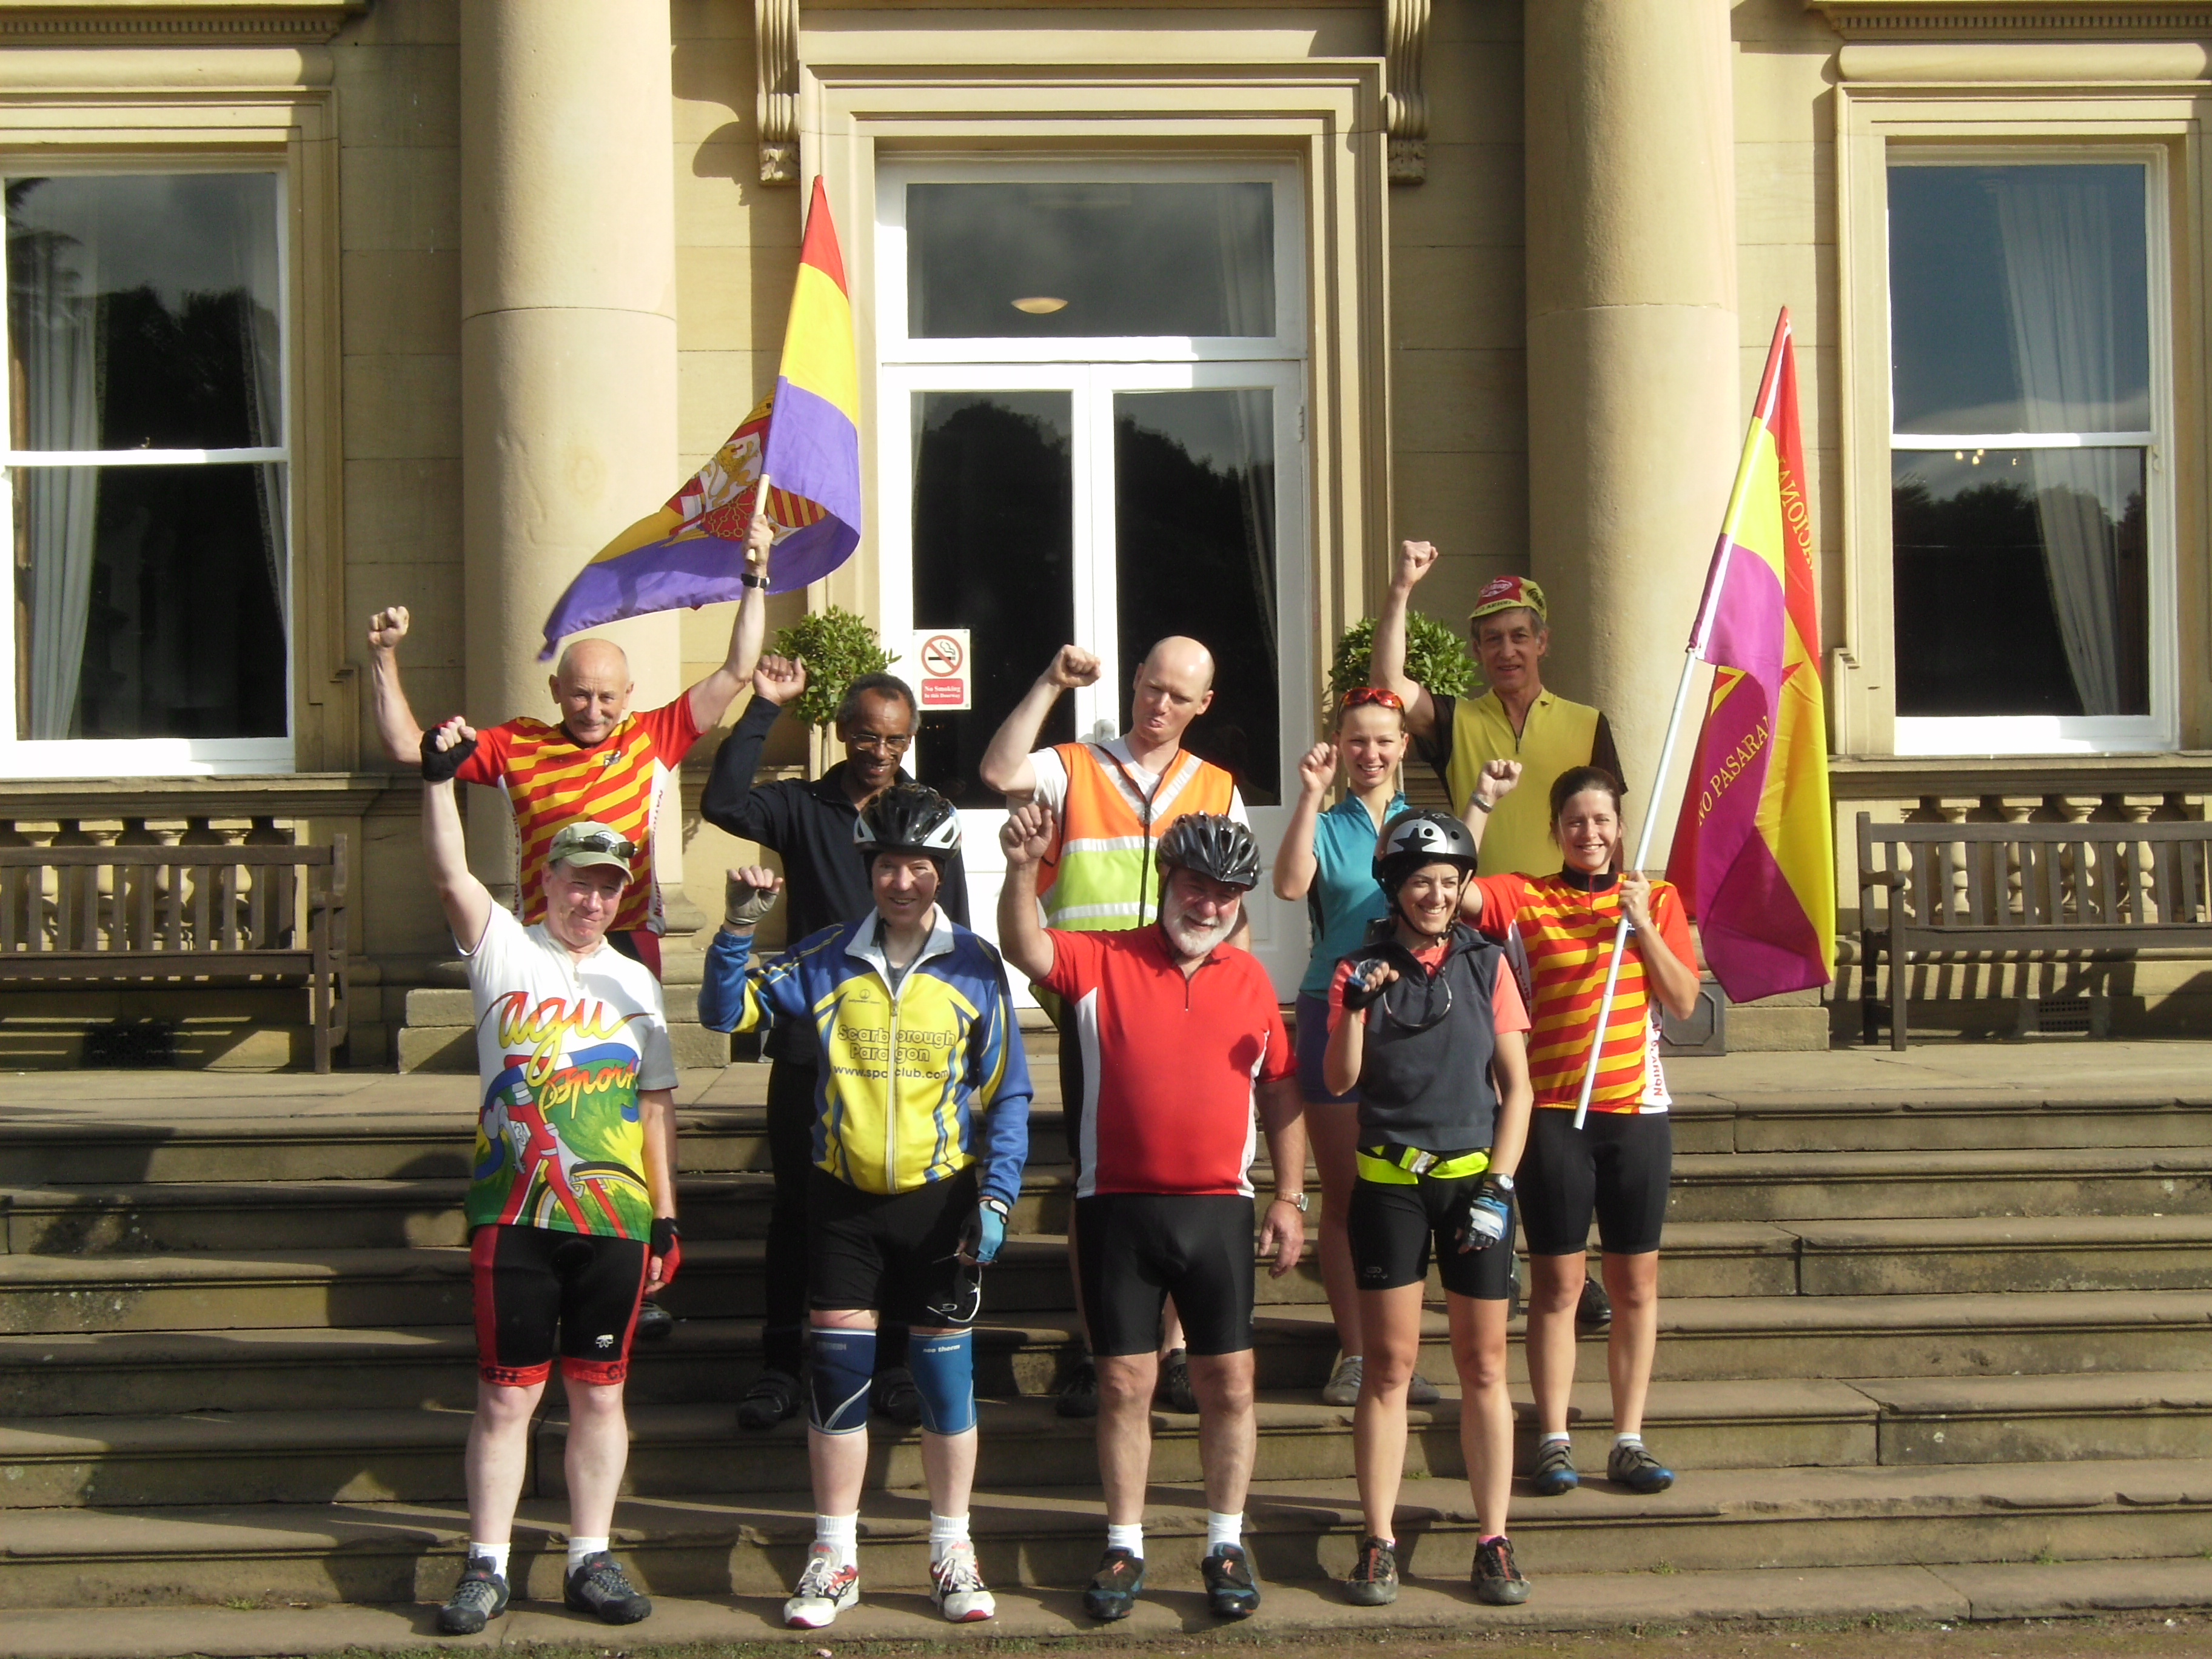 Cyclists in front of Wortley Hall